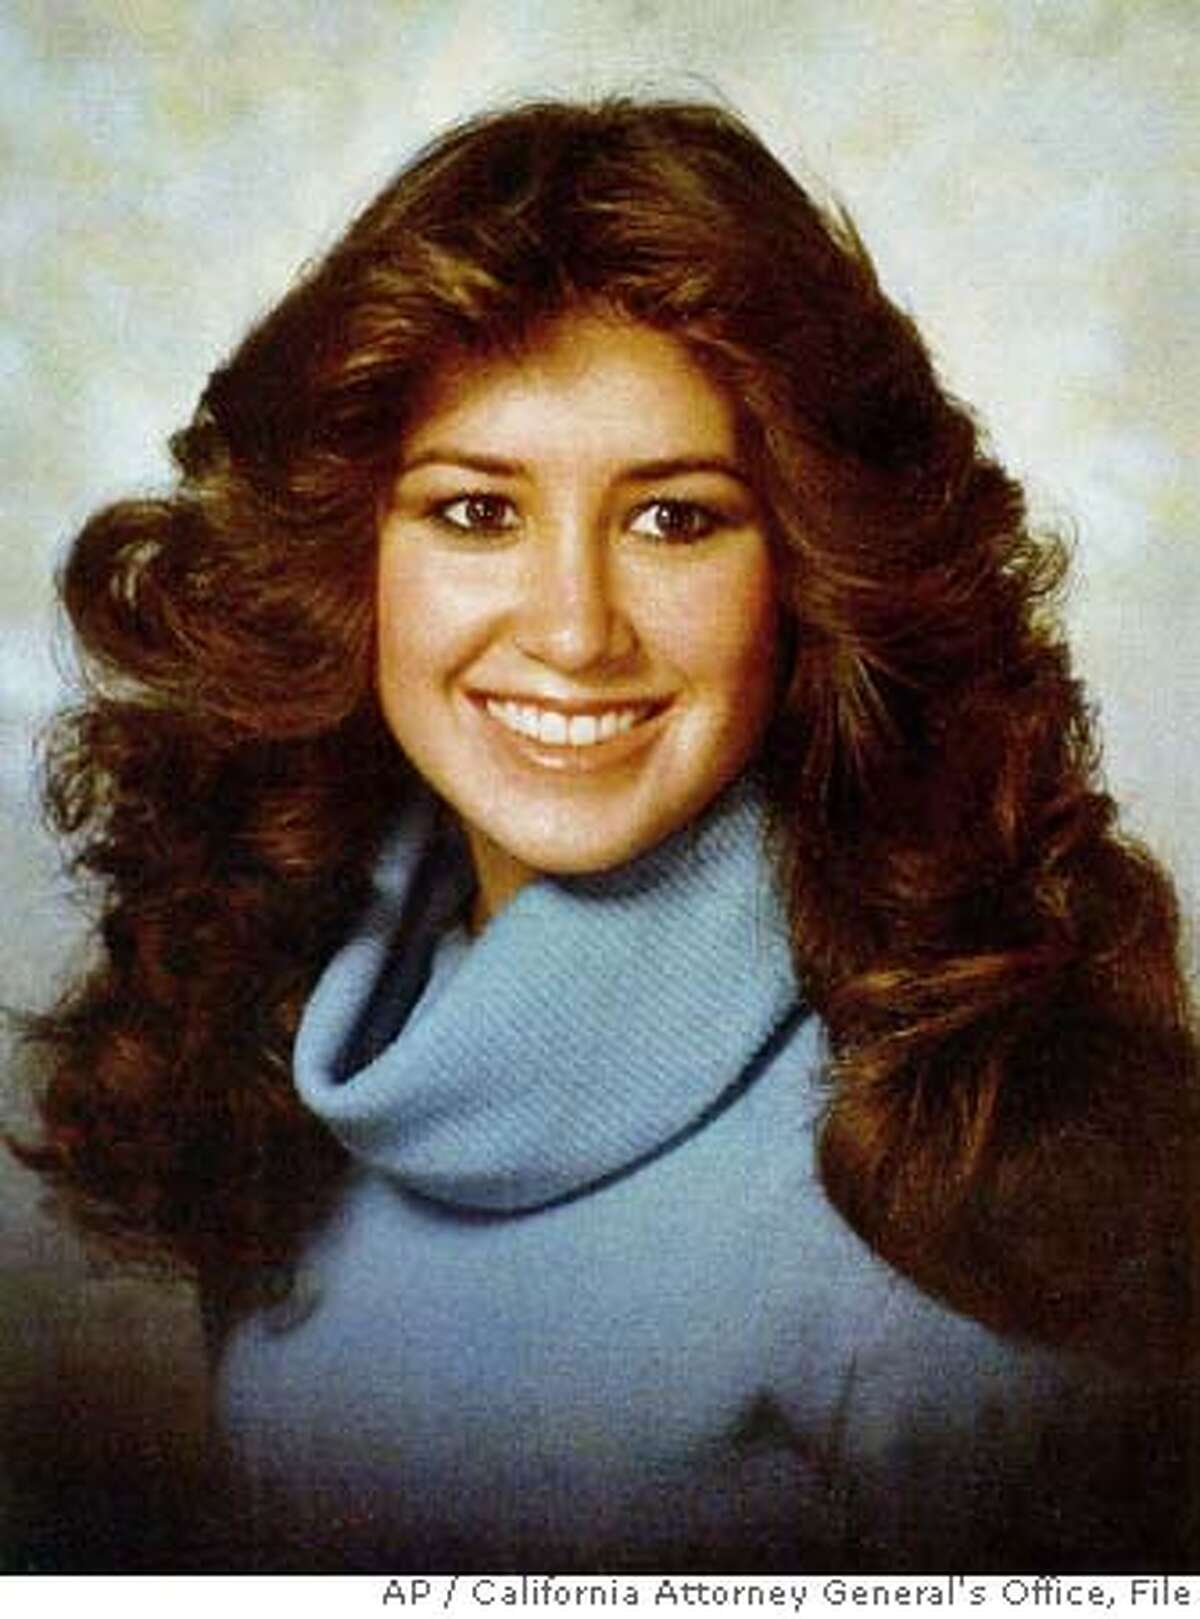 **FILE** In this undated photo released by the California Attorney General's Office, Terri Winchell is shown. Michael Morales was convicted in 1983 of murdering Winchell, 17, who was found beaten and stabbed in a secluded vineyard. Does California's lethal injection protocol used in executions cause too much pain and violate the Eighth Amendment ban on cruel and unusual punishment? That question will be the subject of at least four days of hearings, beginning Tuesday, Sept. 26, 2006, before a California federal judge in San Jose, Calif. The litigation surrounds the case of Morales. (AP Photo/California Attorney General's Office) Ran on: 09-28-2006 Terri Winchell was raped and fatally beaten in 1981. Ran on: 09-28-2006 Ran on: 09-28-2006 Ran on: 09-28-2006 UNDATED PHOTO PROVIDED BY THE CALIFORNIA ATTORNEY GENERAL'S OFFICE